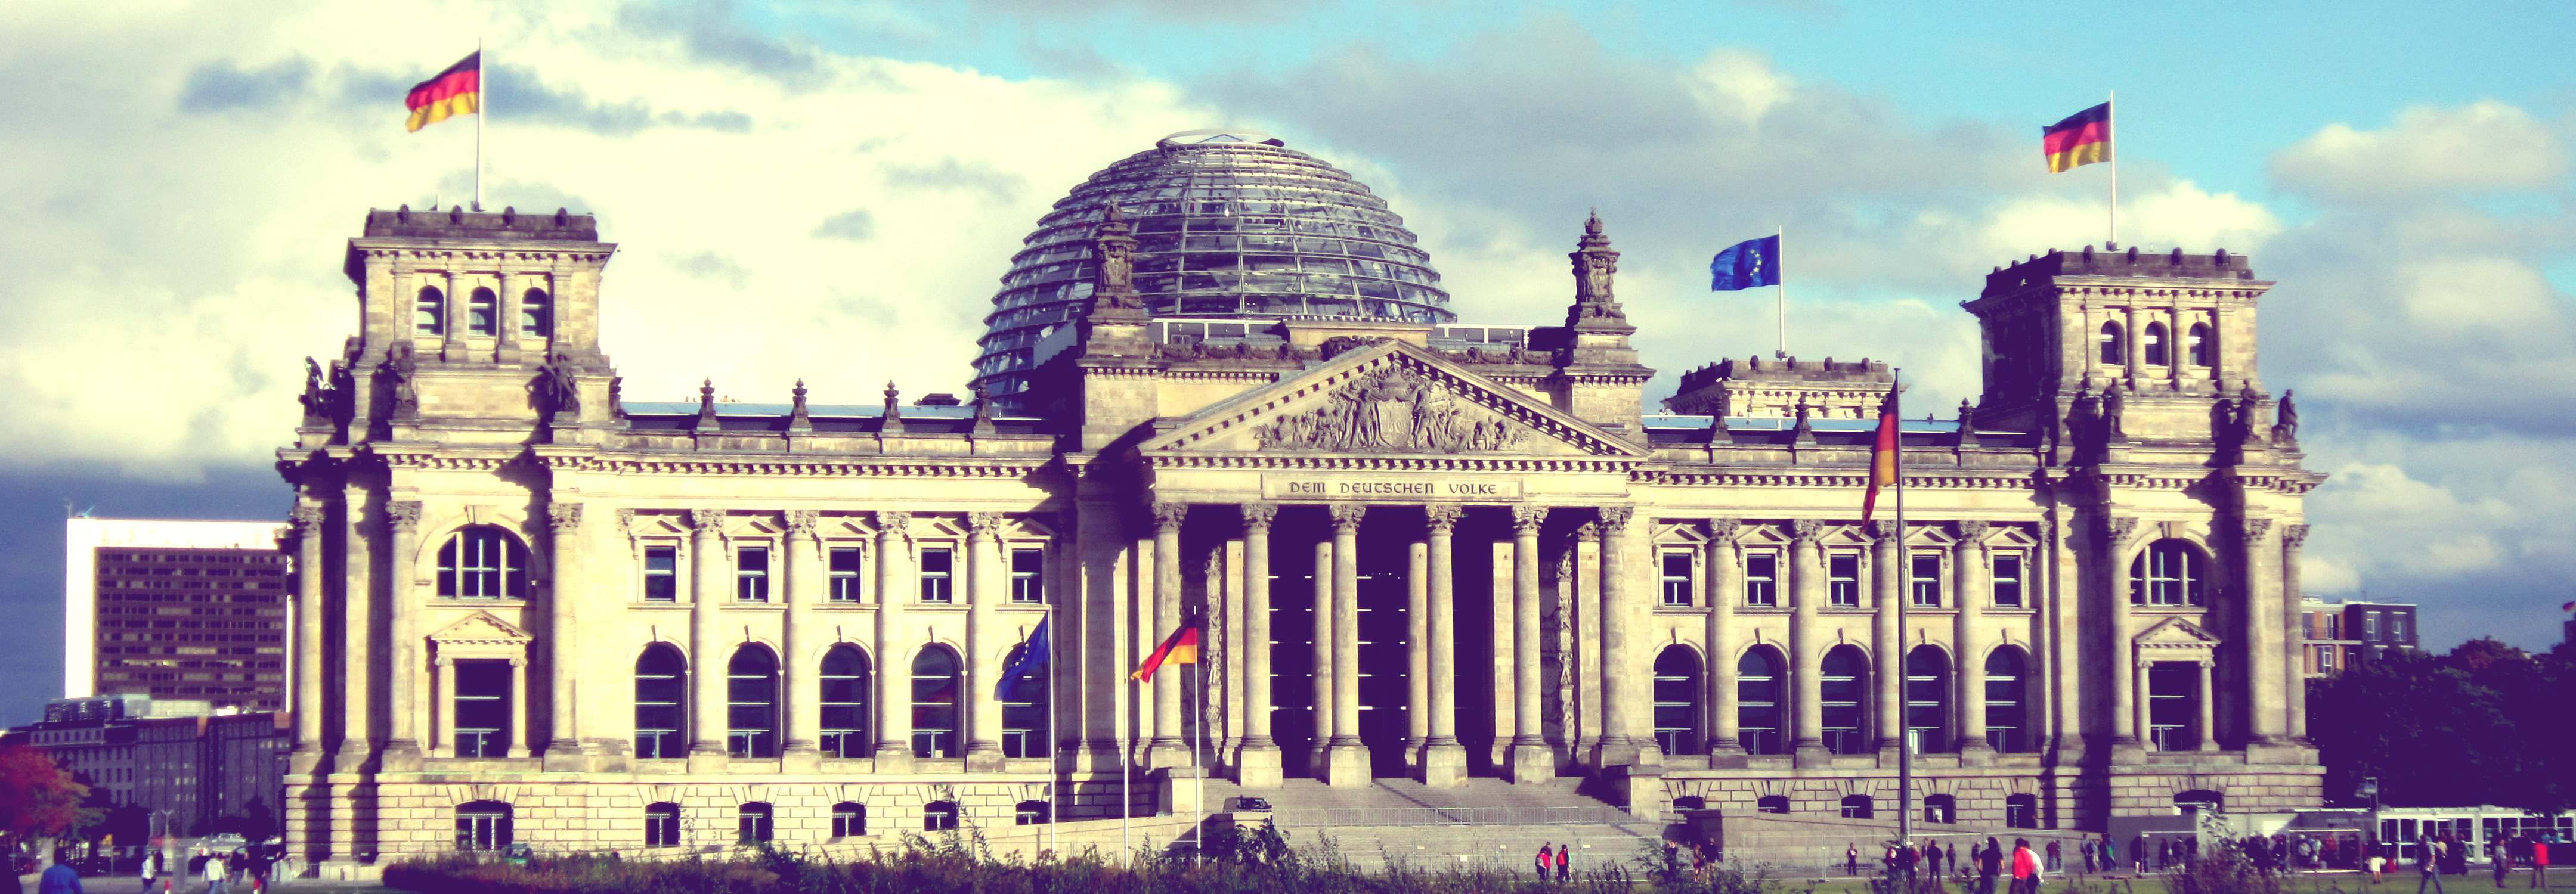 Berlin Reichstag Private Tour